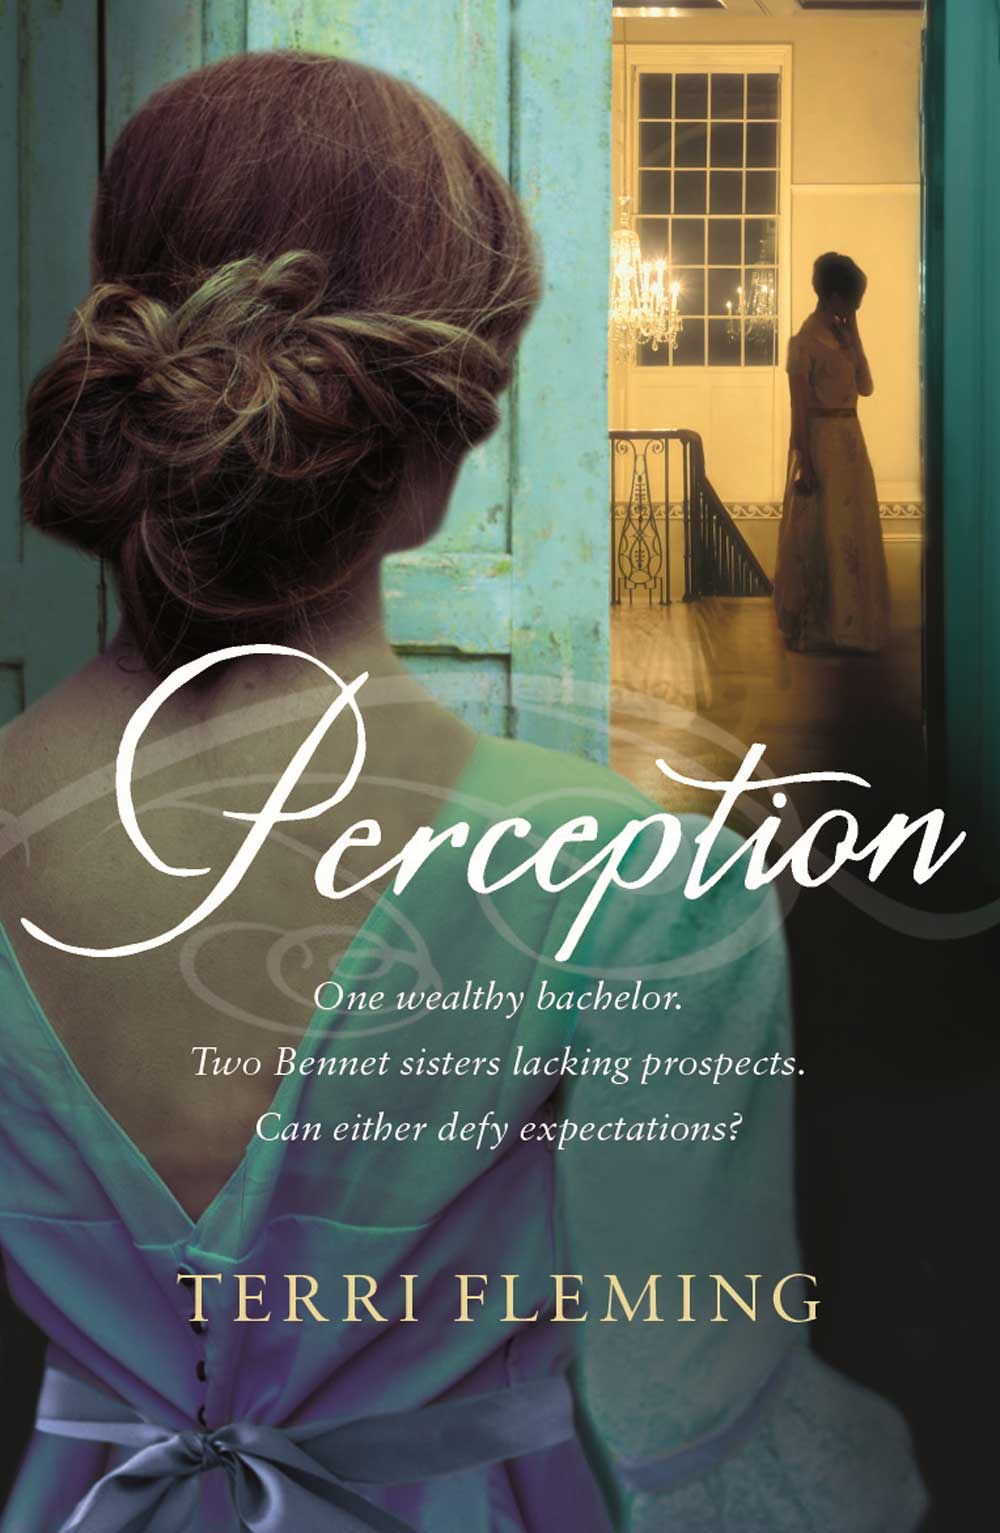 Perception by Terri Flemming